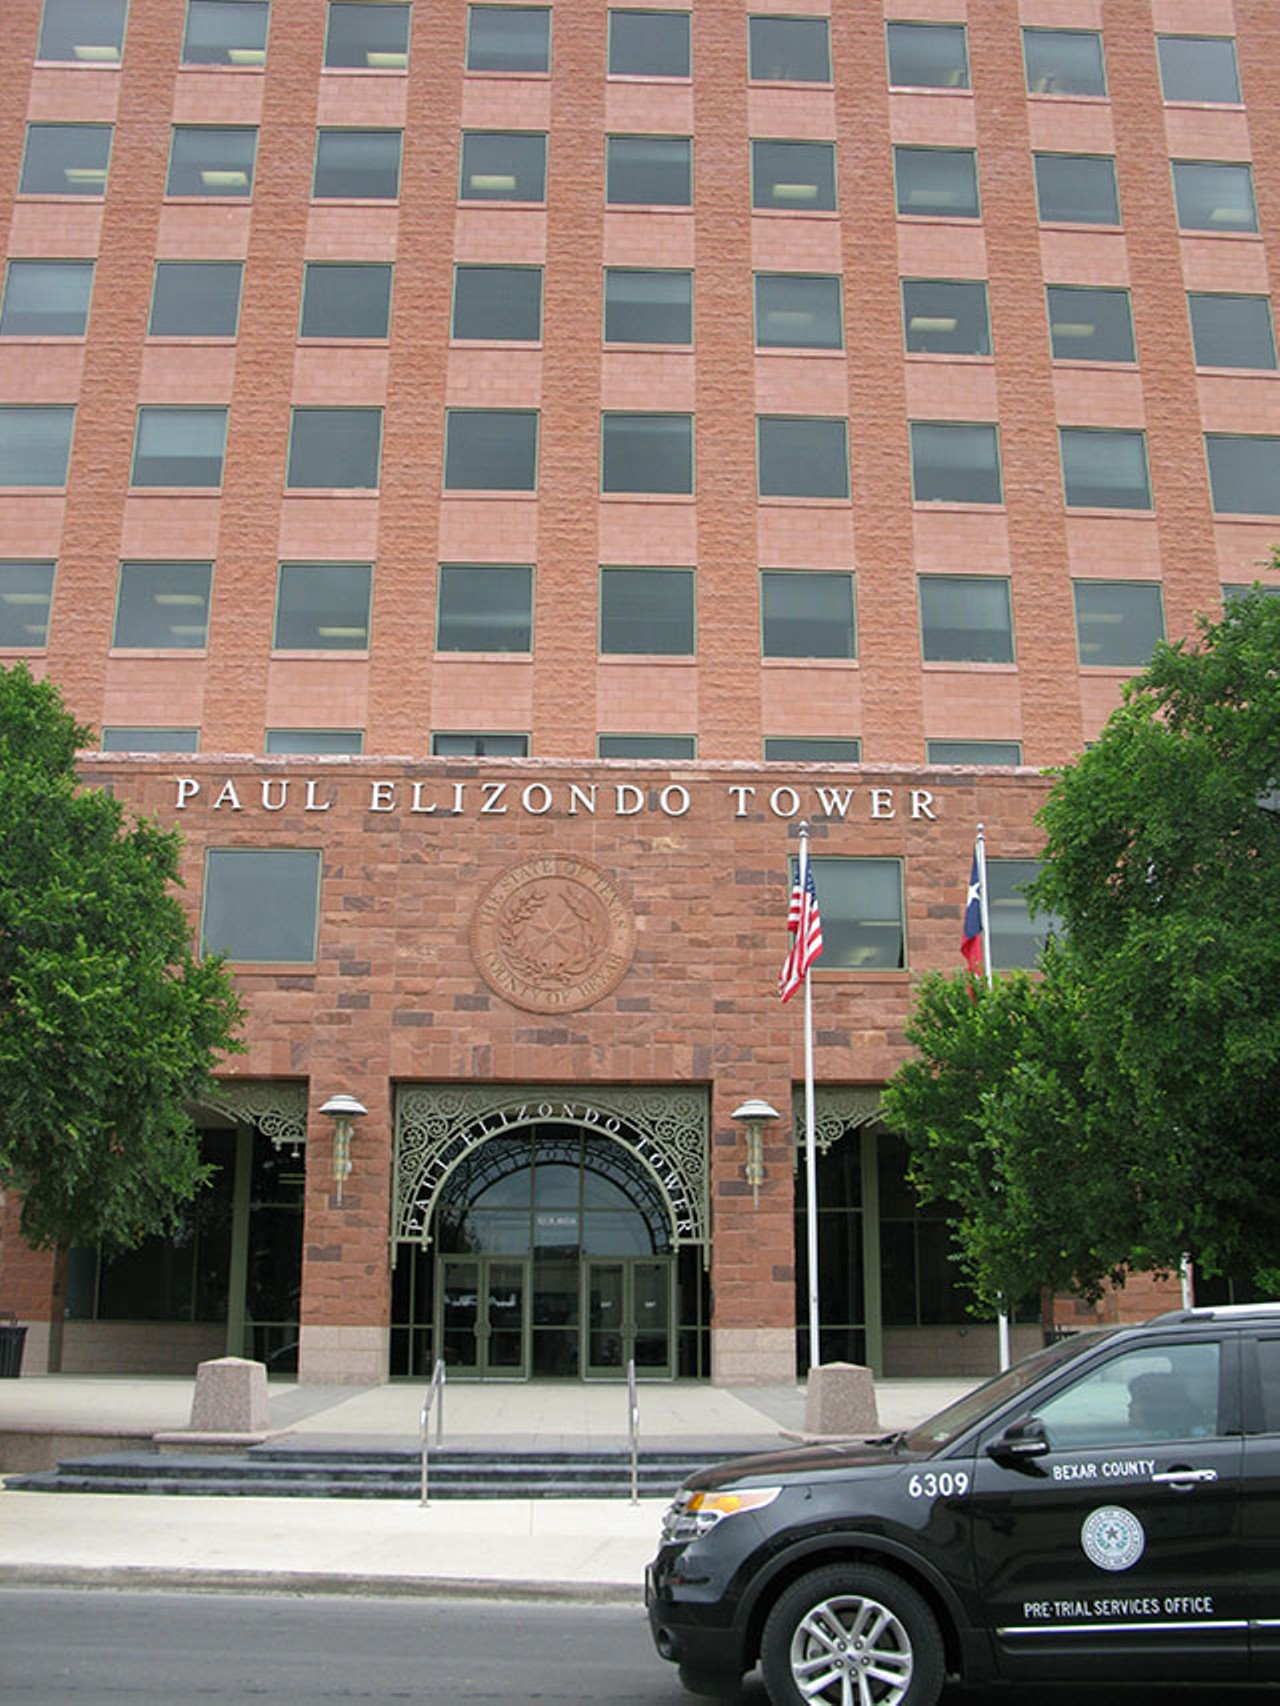 Reasonable Doubt Can The Bexar County Public Defender S